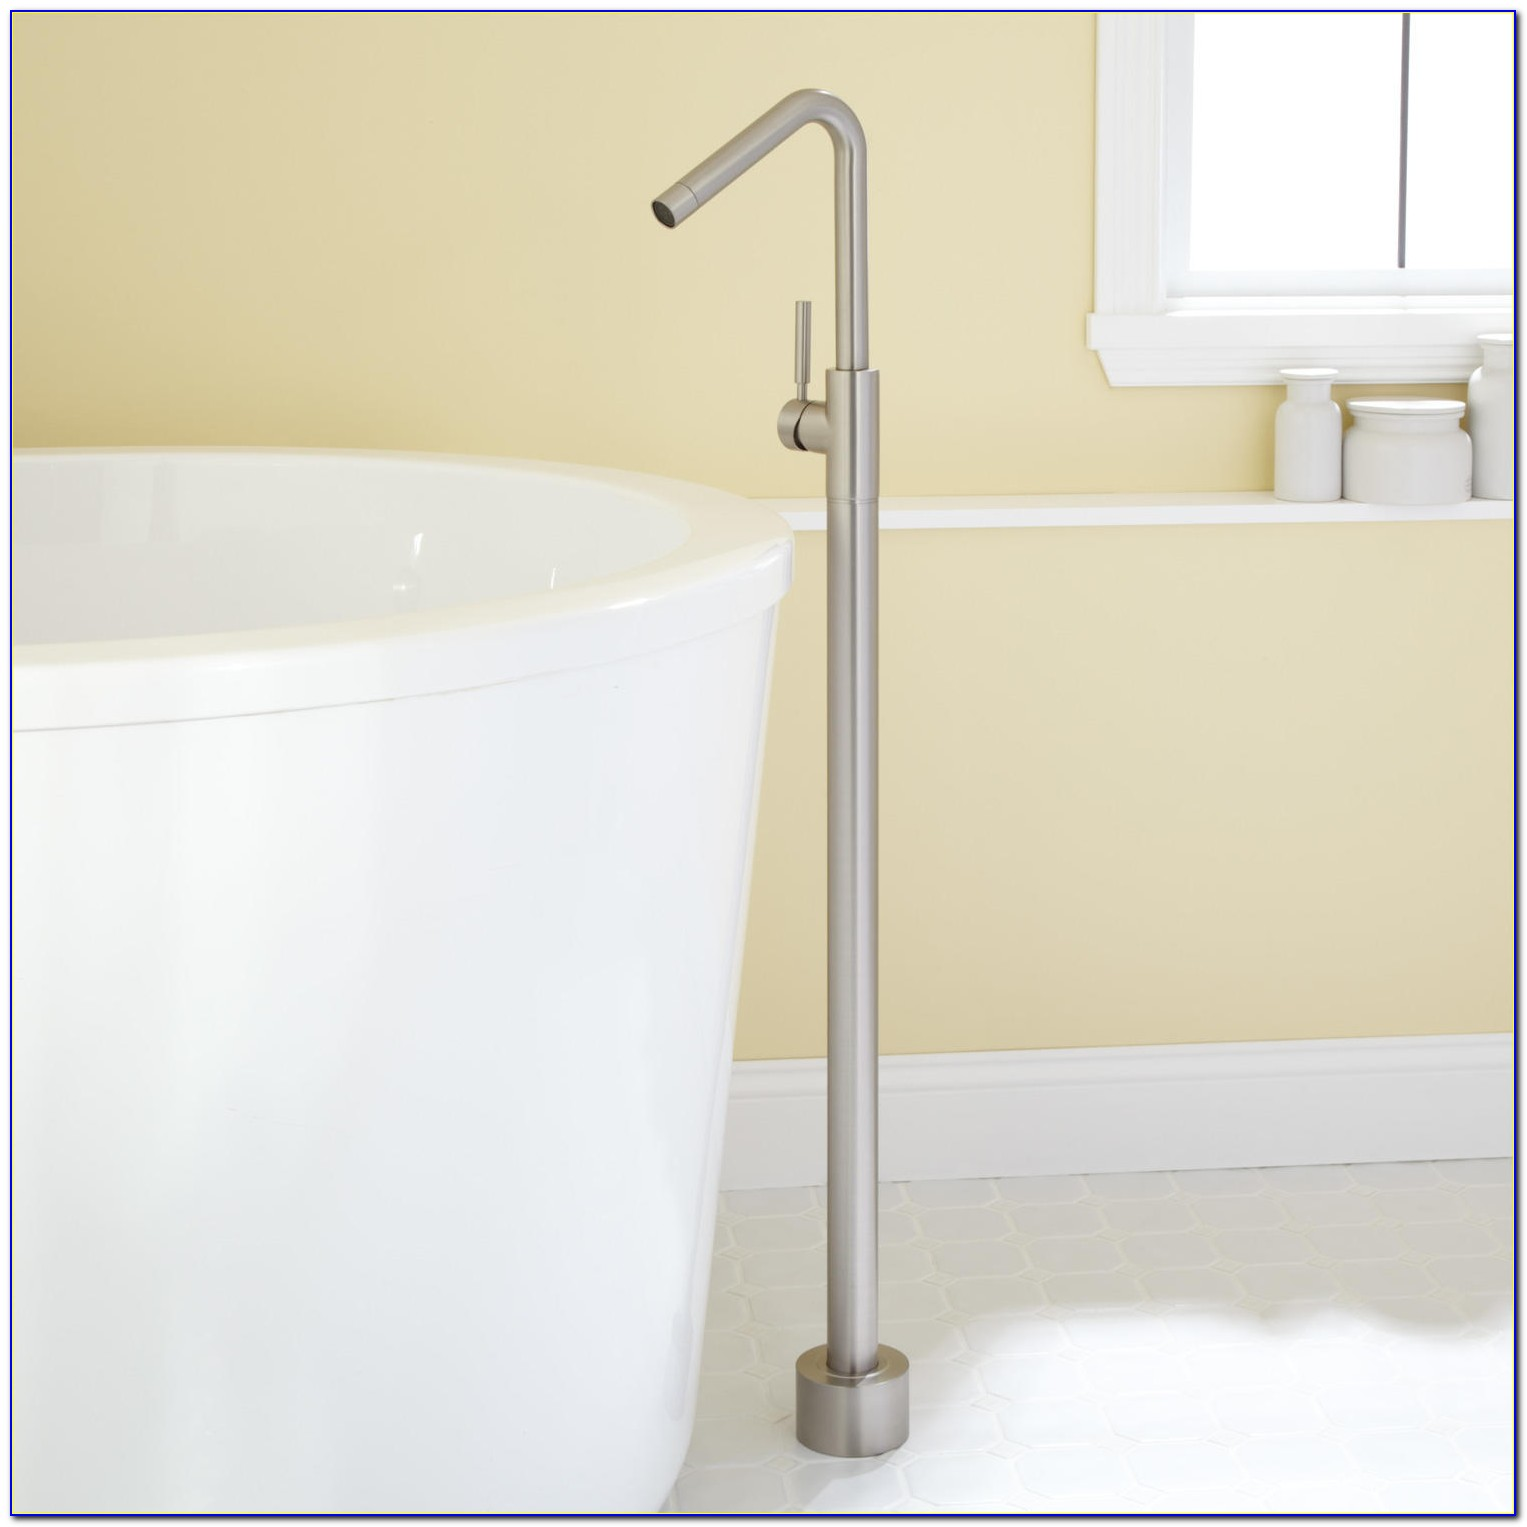 Wall Mounted Faucets For Freestanding Tubs